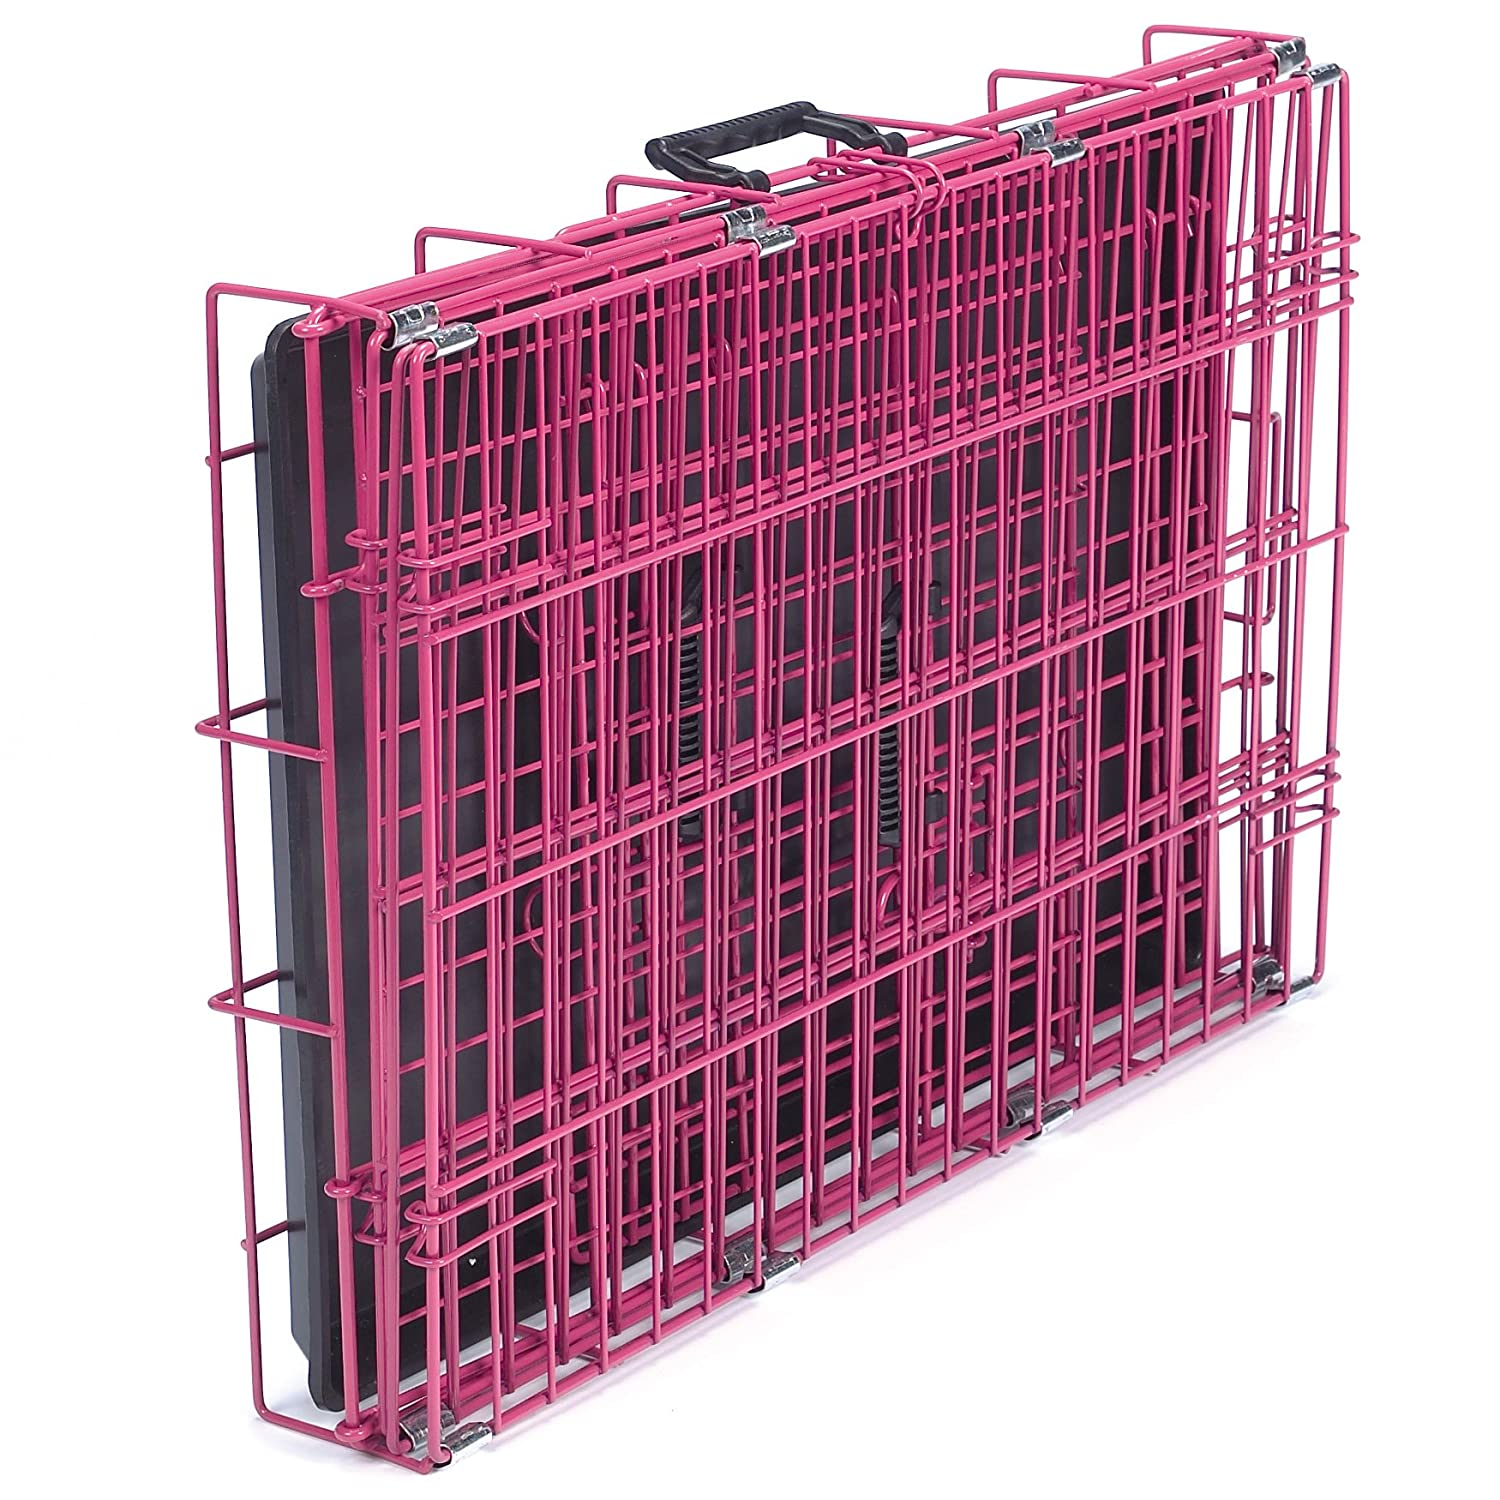 purple dog crate - amazoncom proselect crate appeal fashion color dog crates for